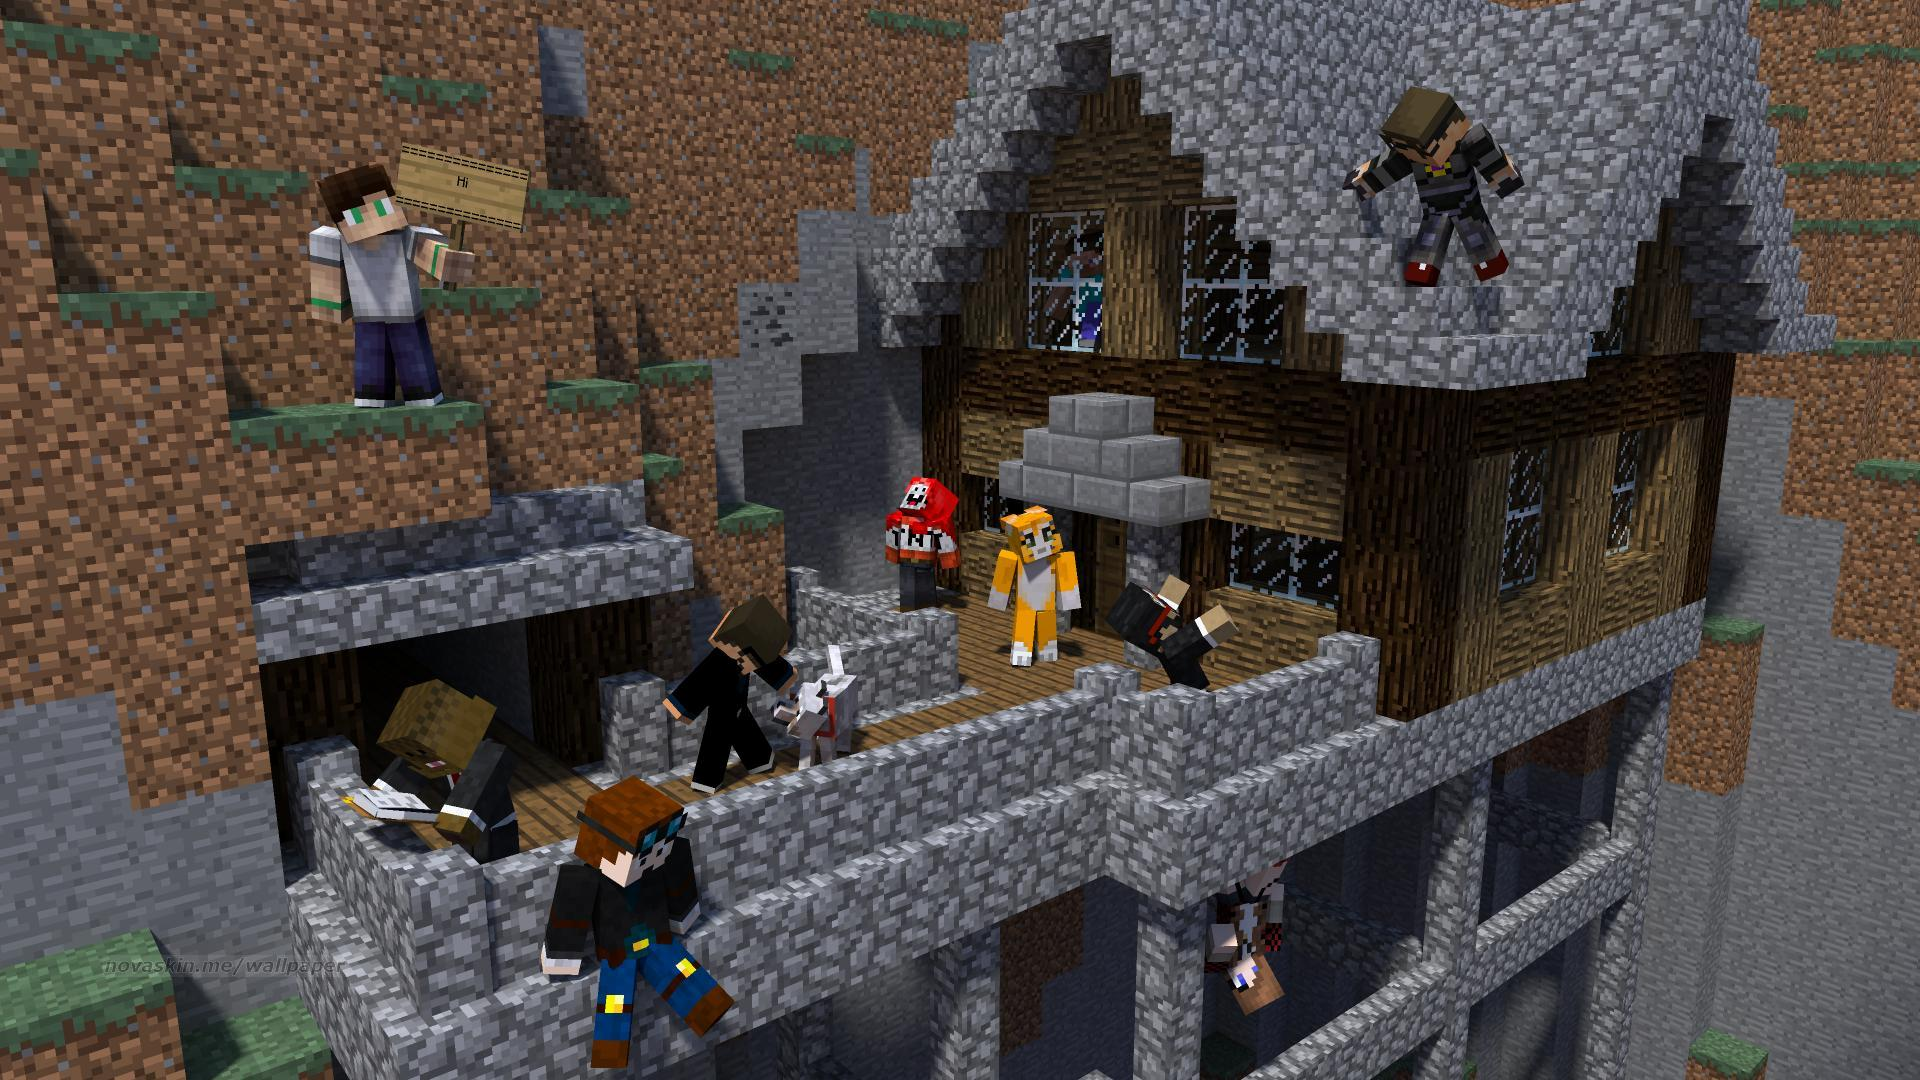 How To Make Your Own Minecraft Wallpaper